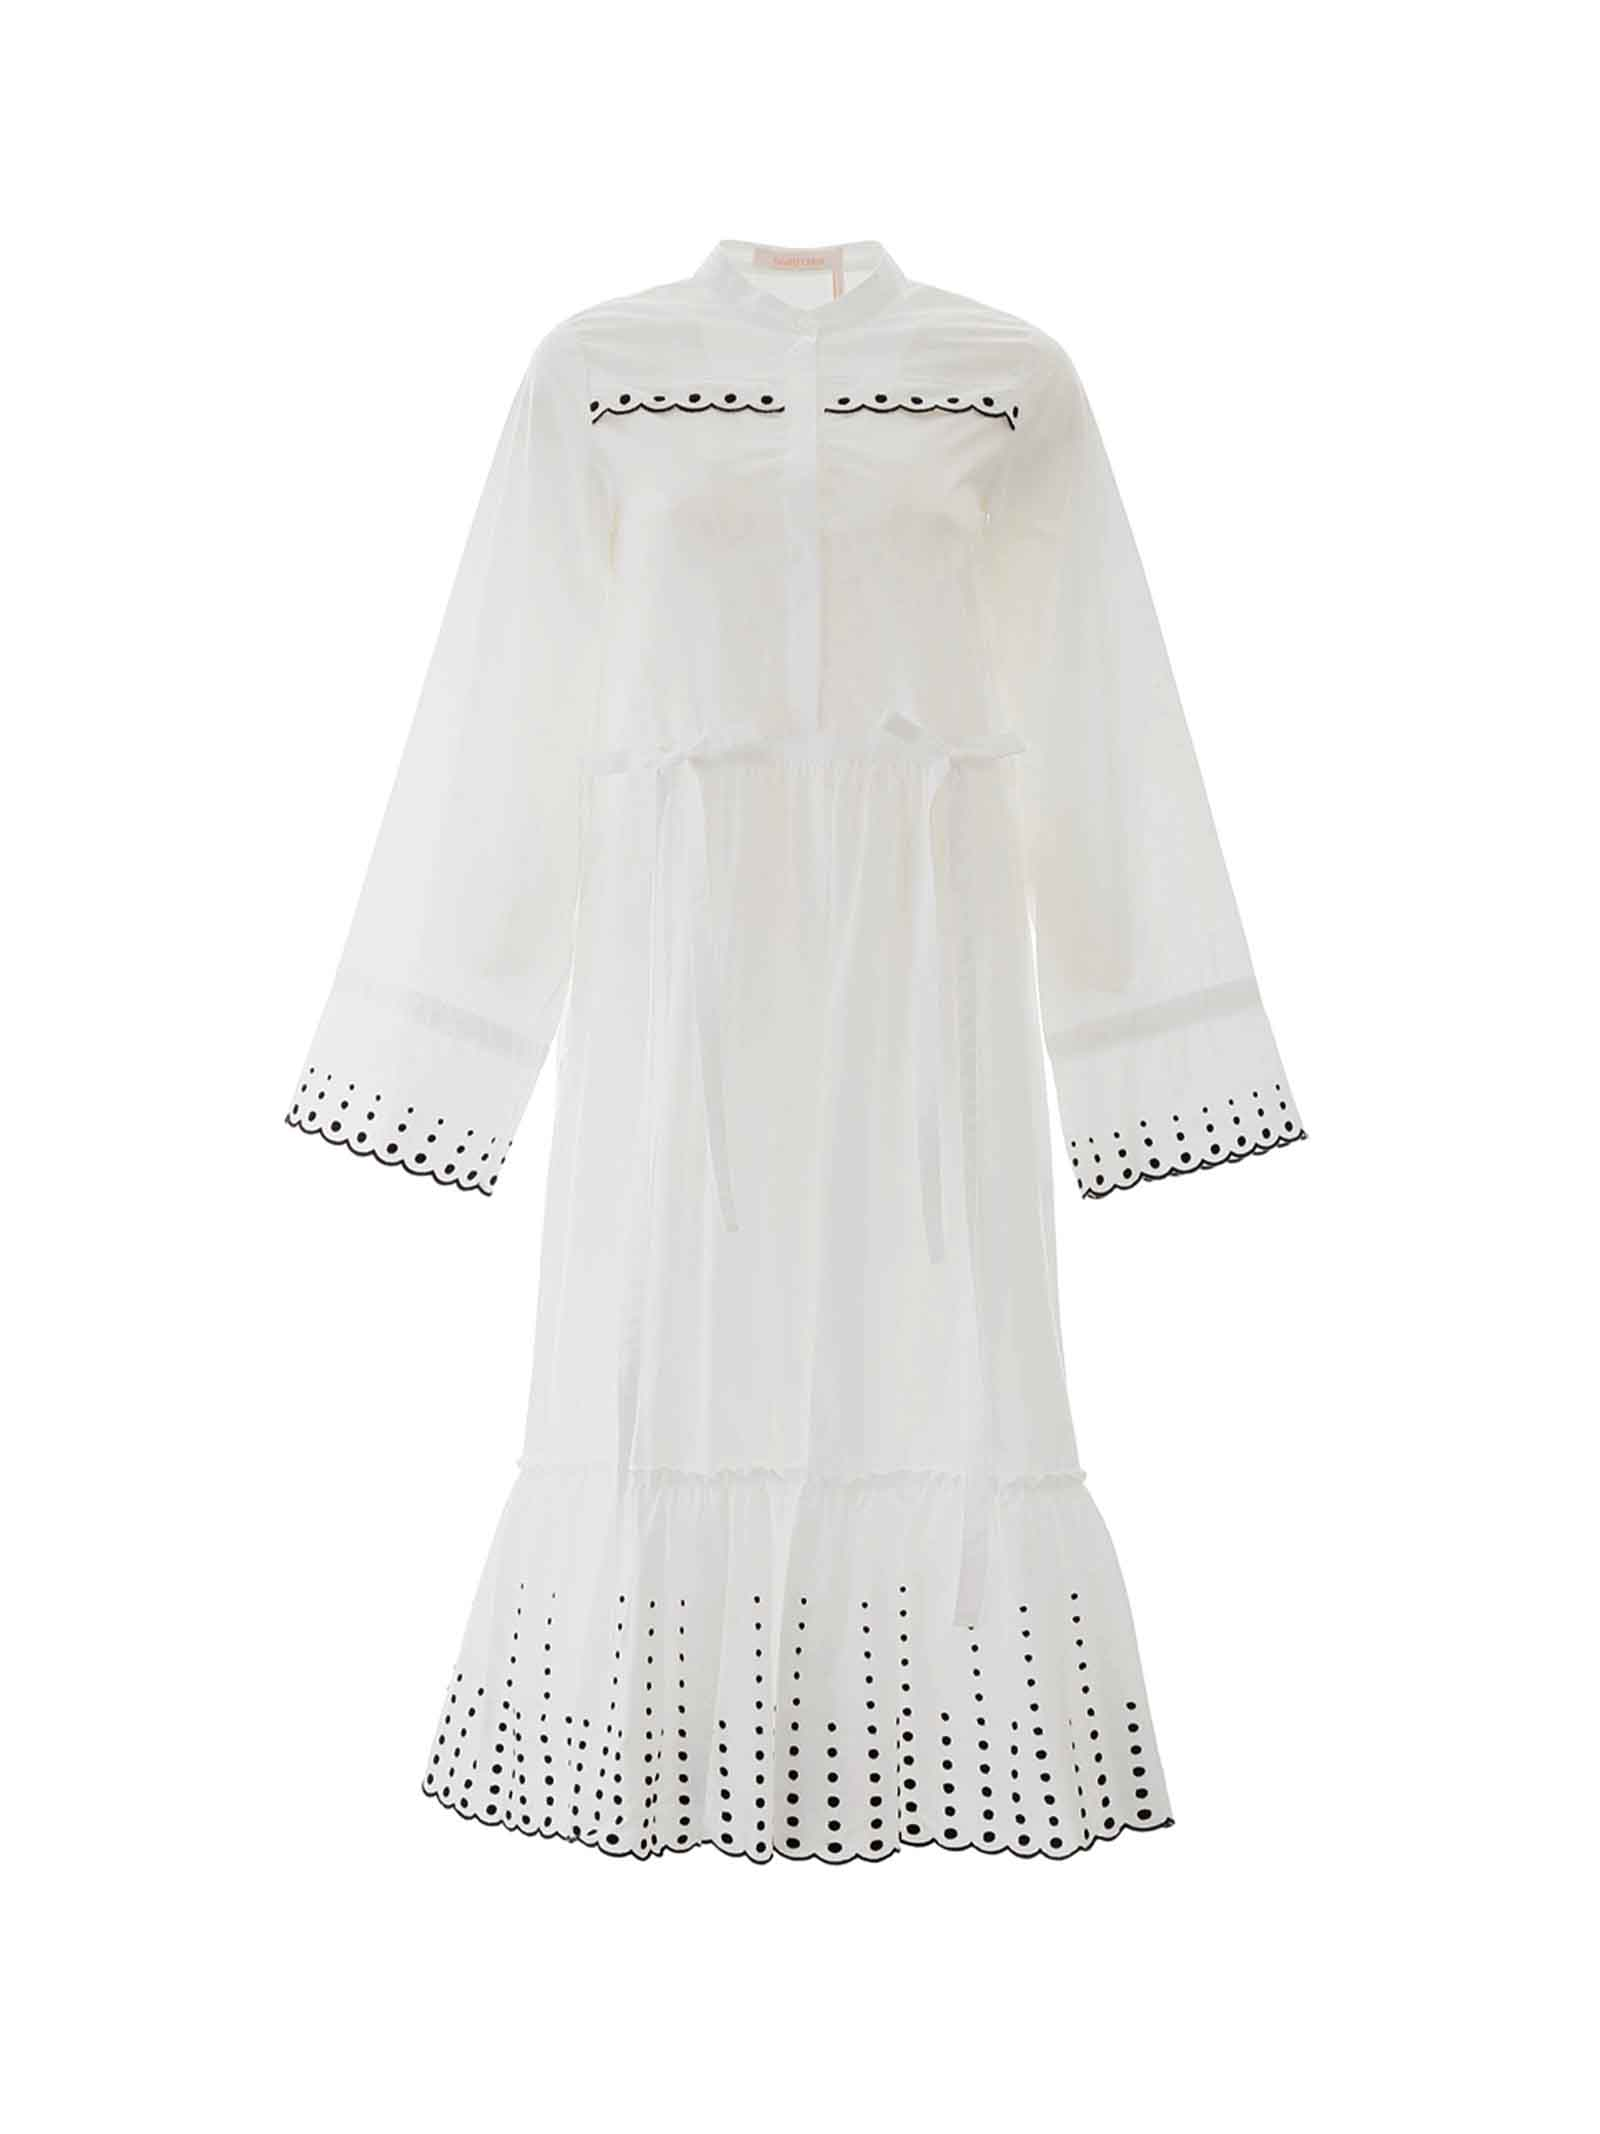 Buy See by Chloé See By Chloè Embroidered Midi Dress online, shop See by Chloé with free shipping